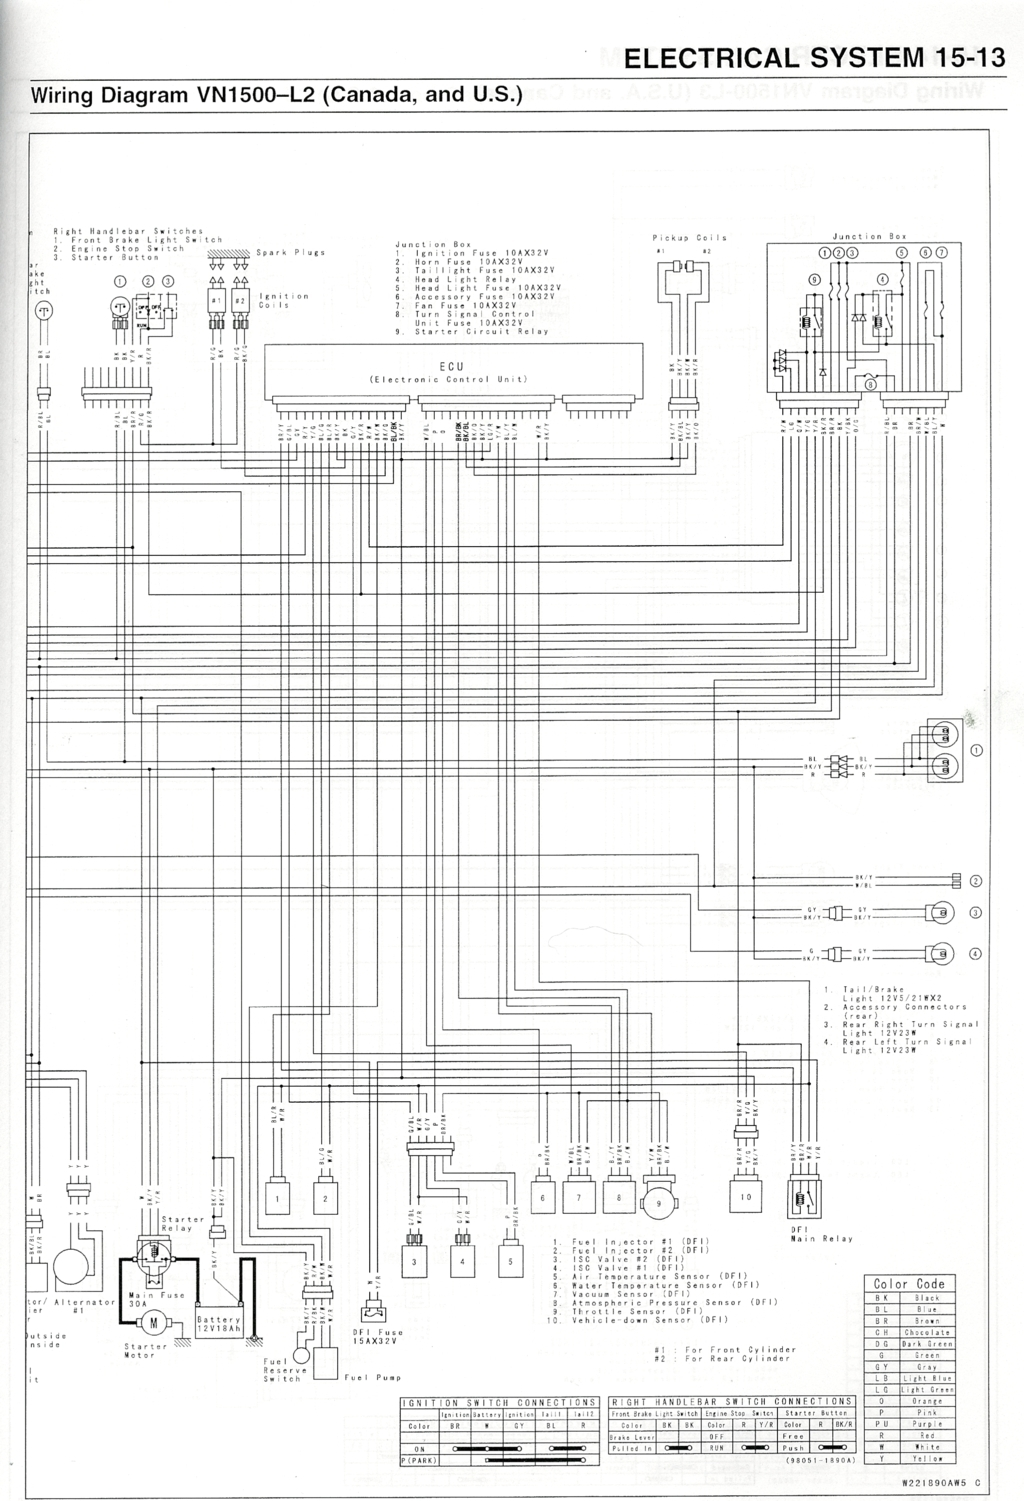 nomad_wiring_diagram_p2 vulcan wiring diagrams gadget's fixit page  at crackthecode.co